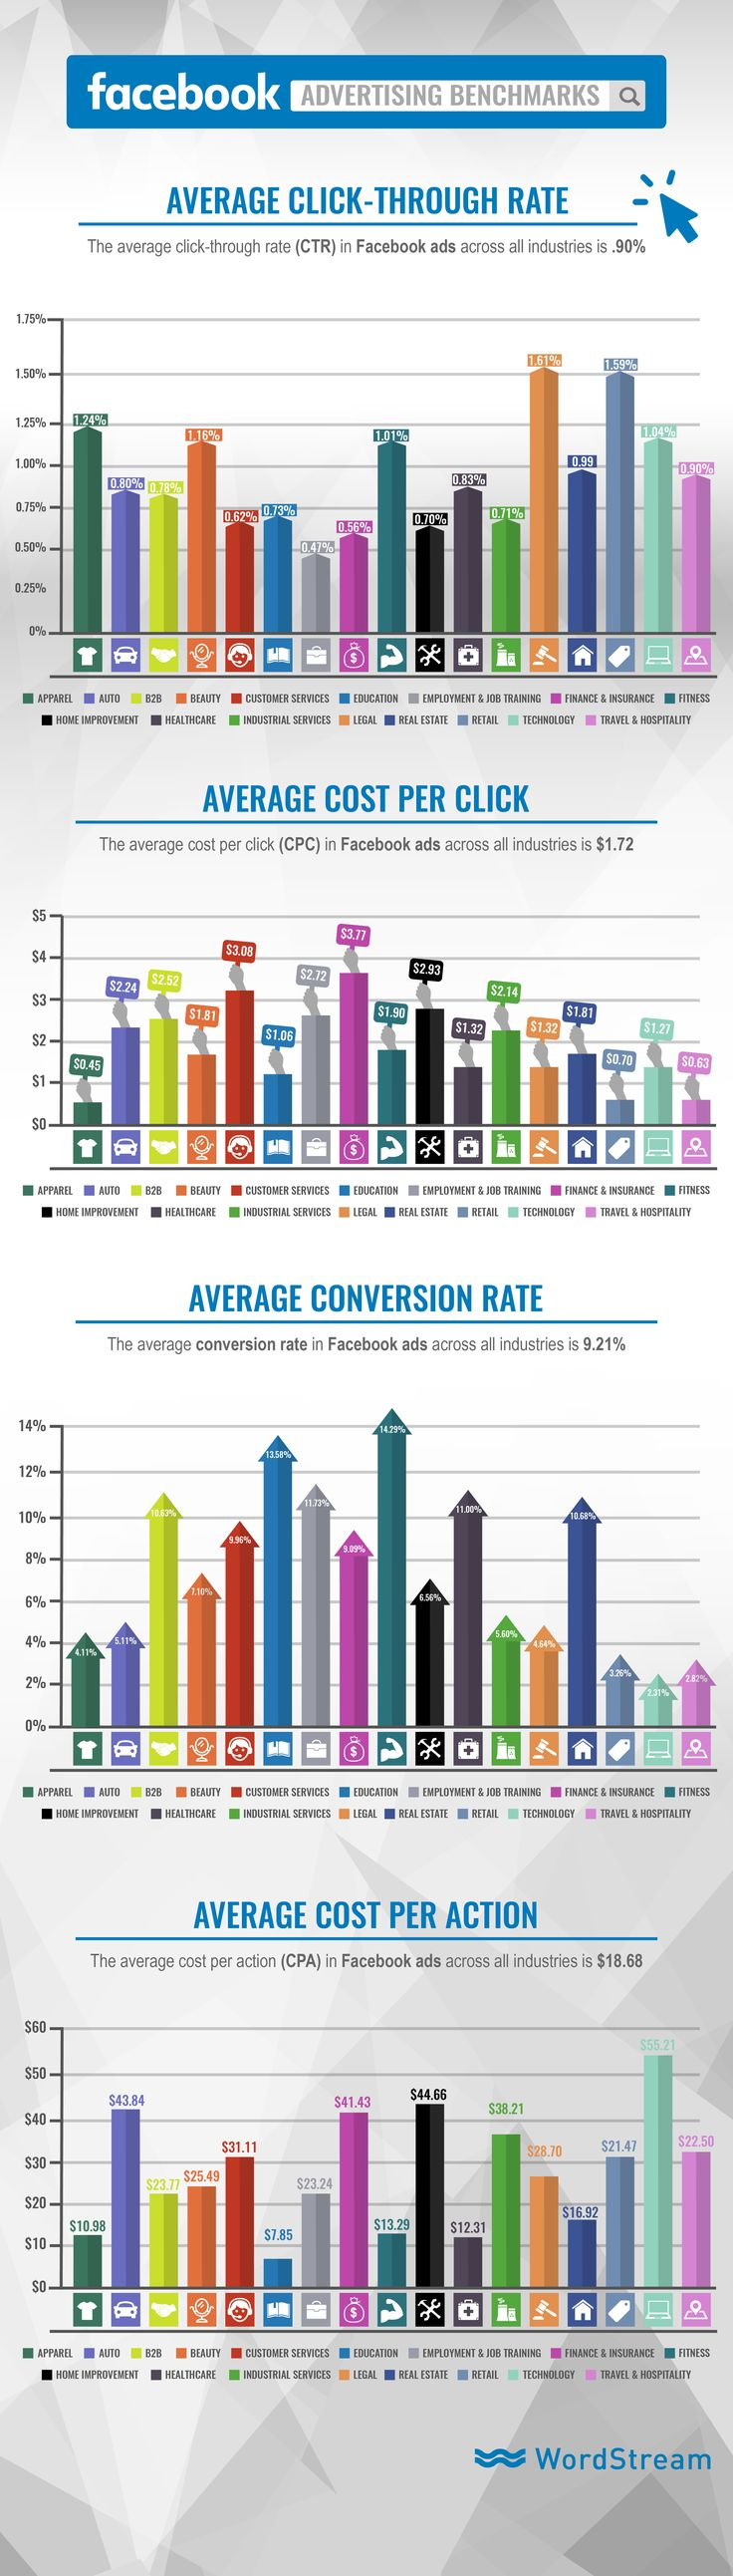 Facebook Ad Benchmarks for YOUR Industry [New Data] - Tap the link to shop on our official online store! You can also join our affiliate and/or rewards programs for FREE!